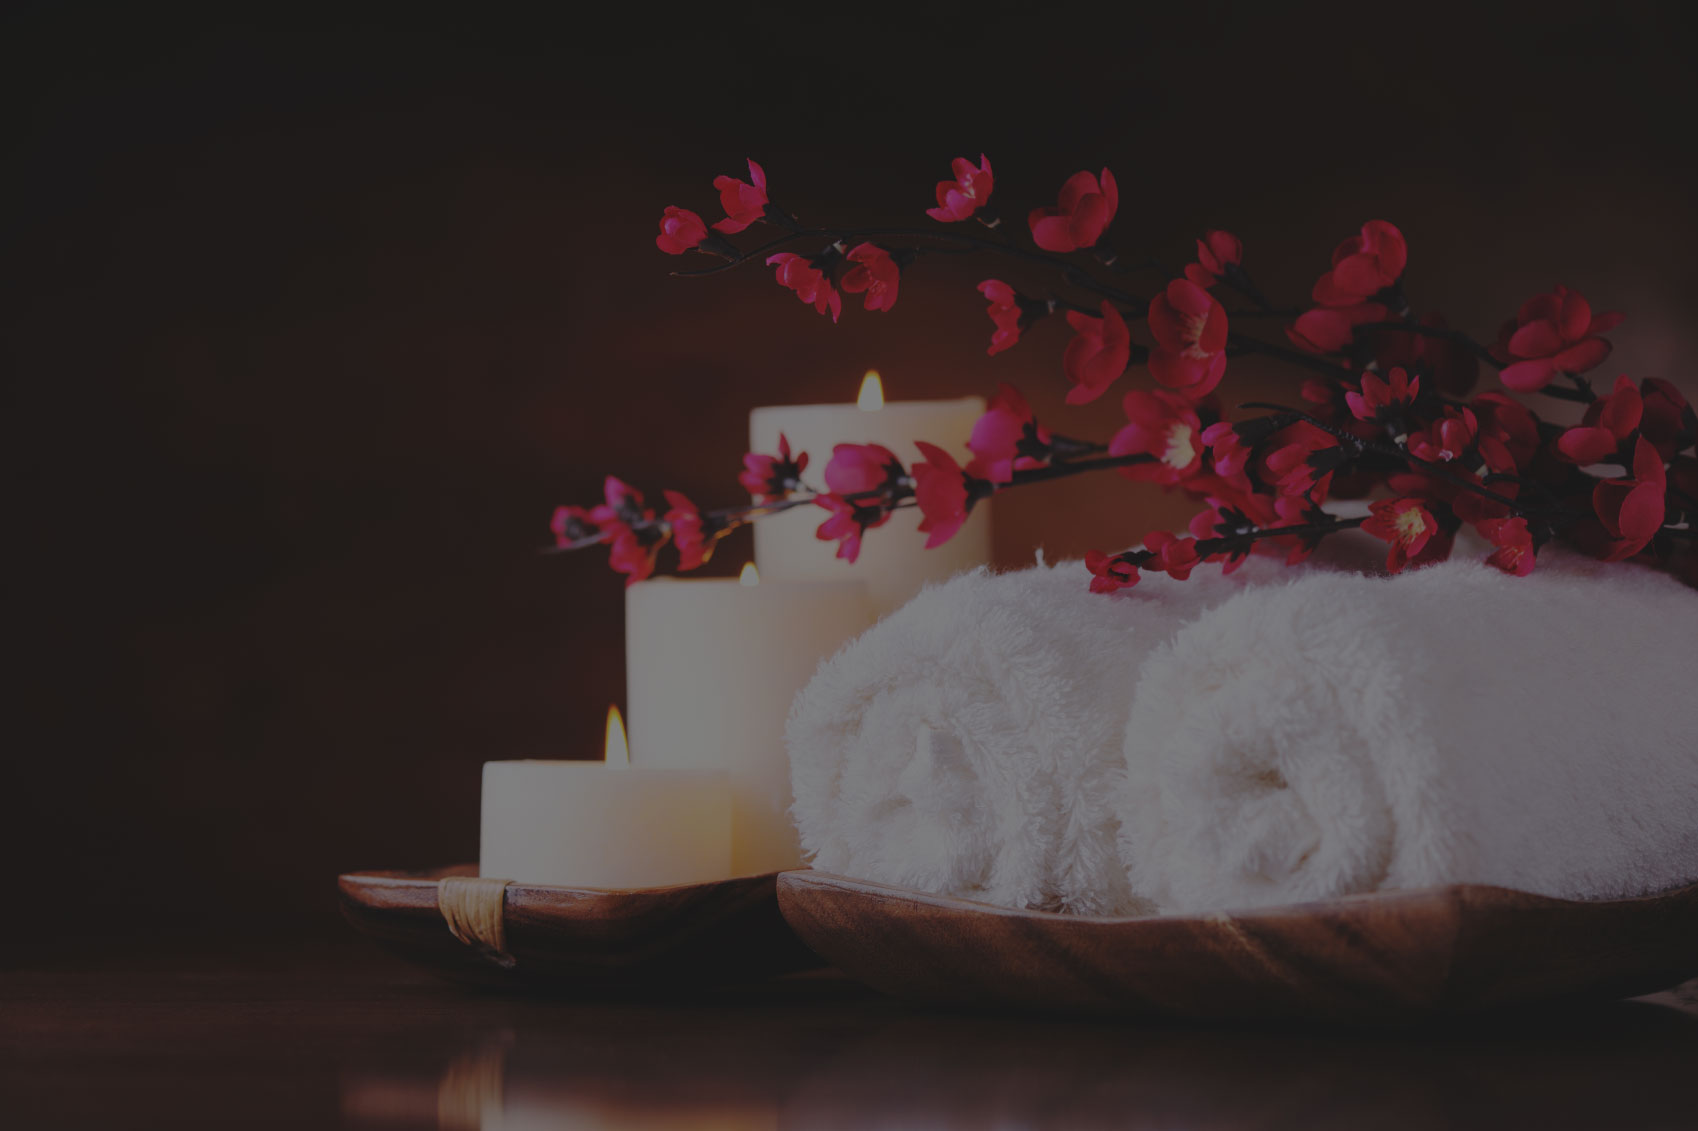 Flowers with rolled towels